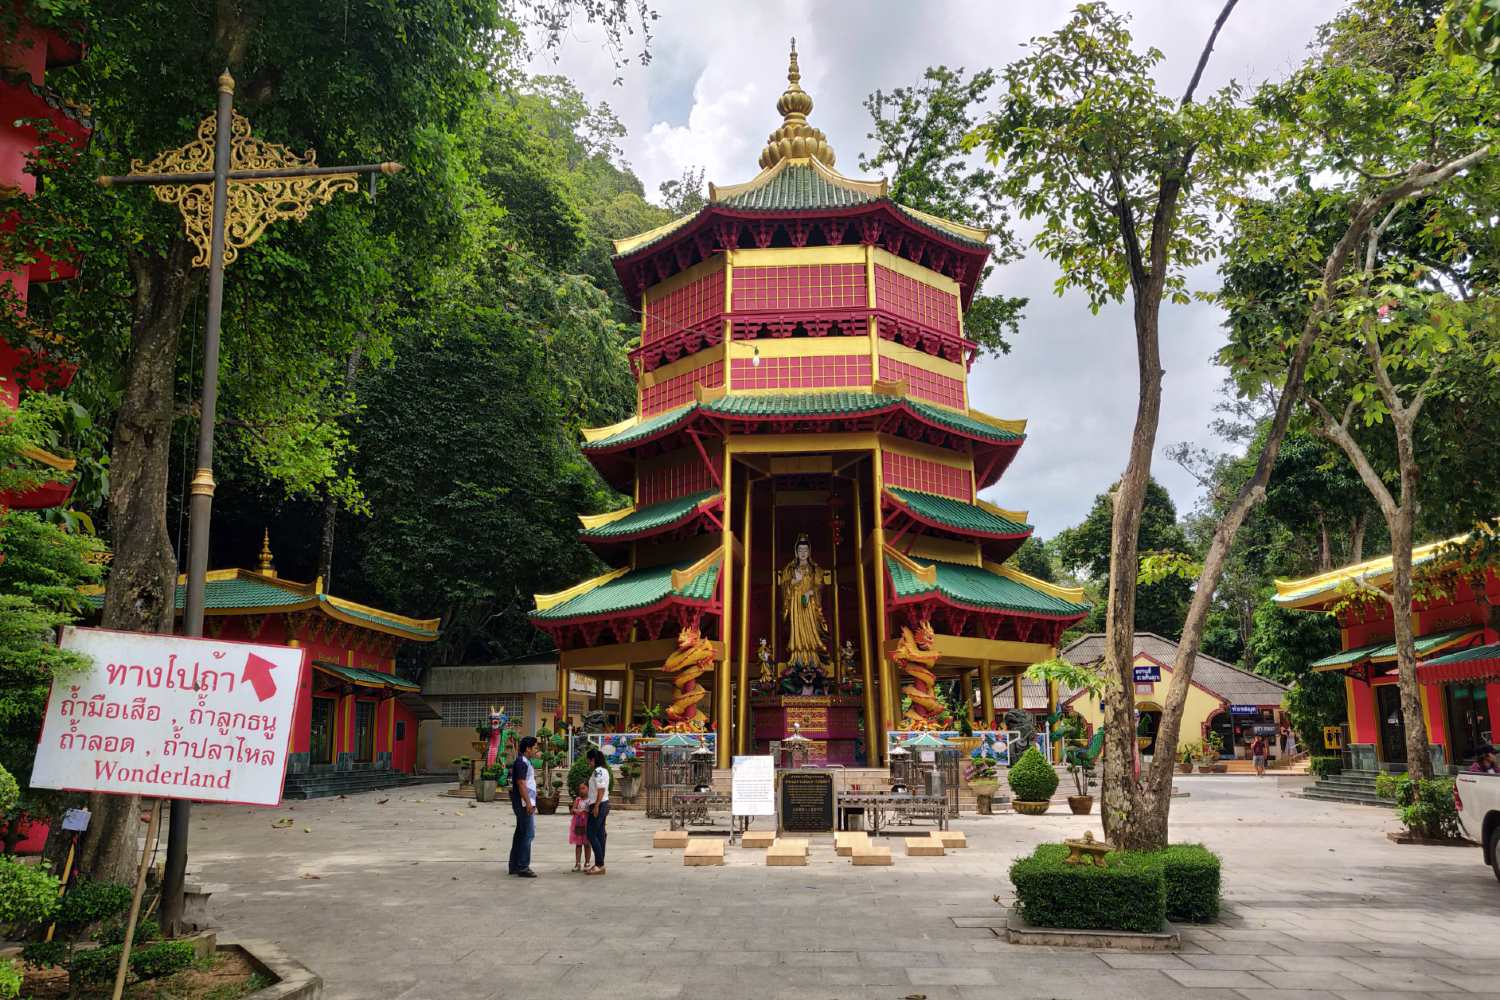 coloured Pagoda at Wonderland in the Tiger Temple in Krabi